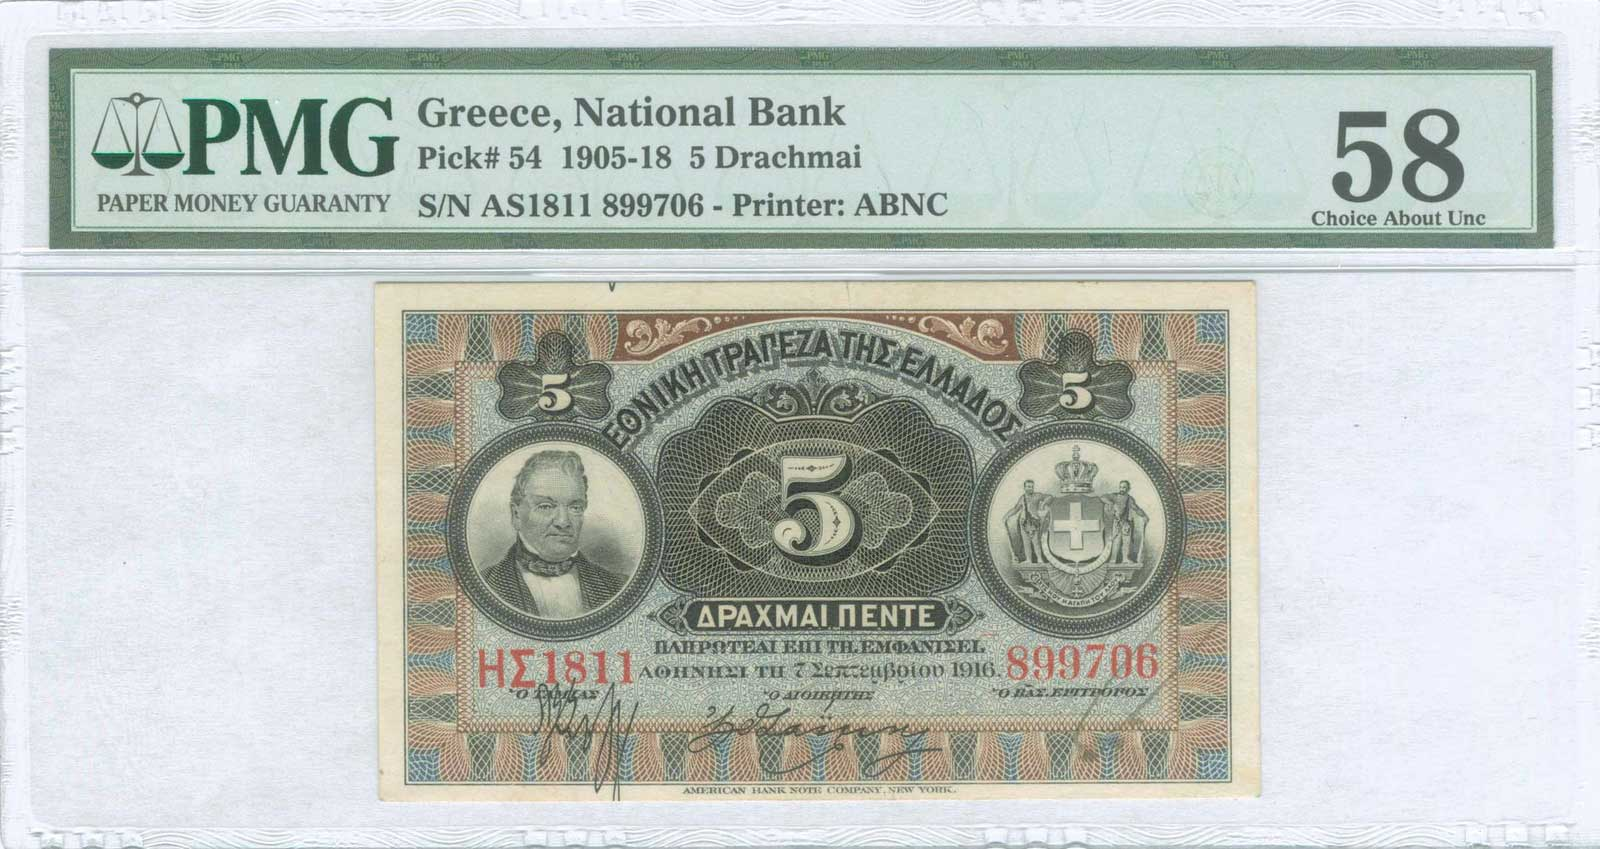 Lot 9266 - GREECE-  PAPER MONEY - BANKNOTES National Bank of Greece -  A. Karamitsos Public & LIVE Bid Auction 610 Coins, Medals & Banknotes